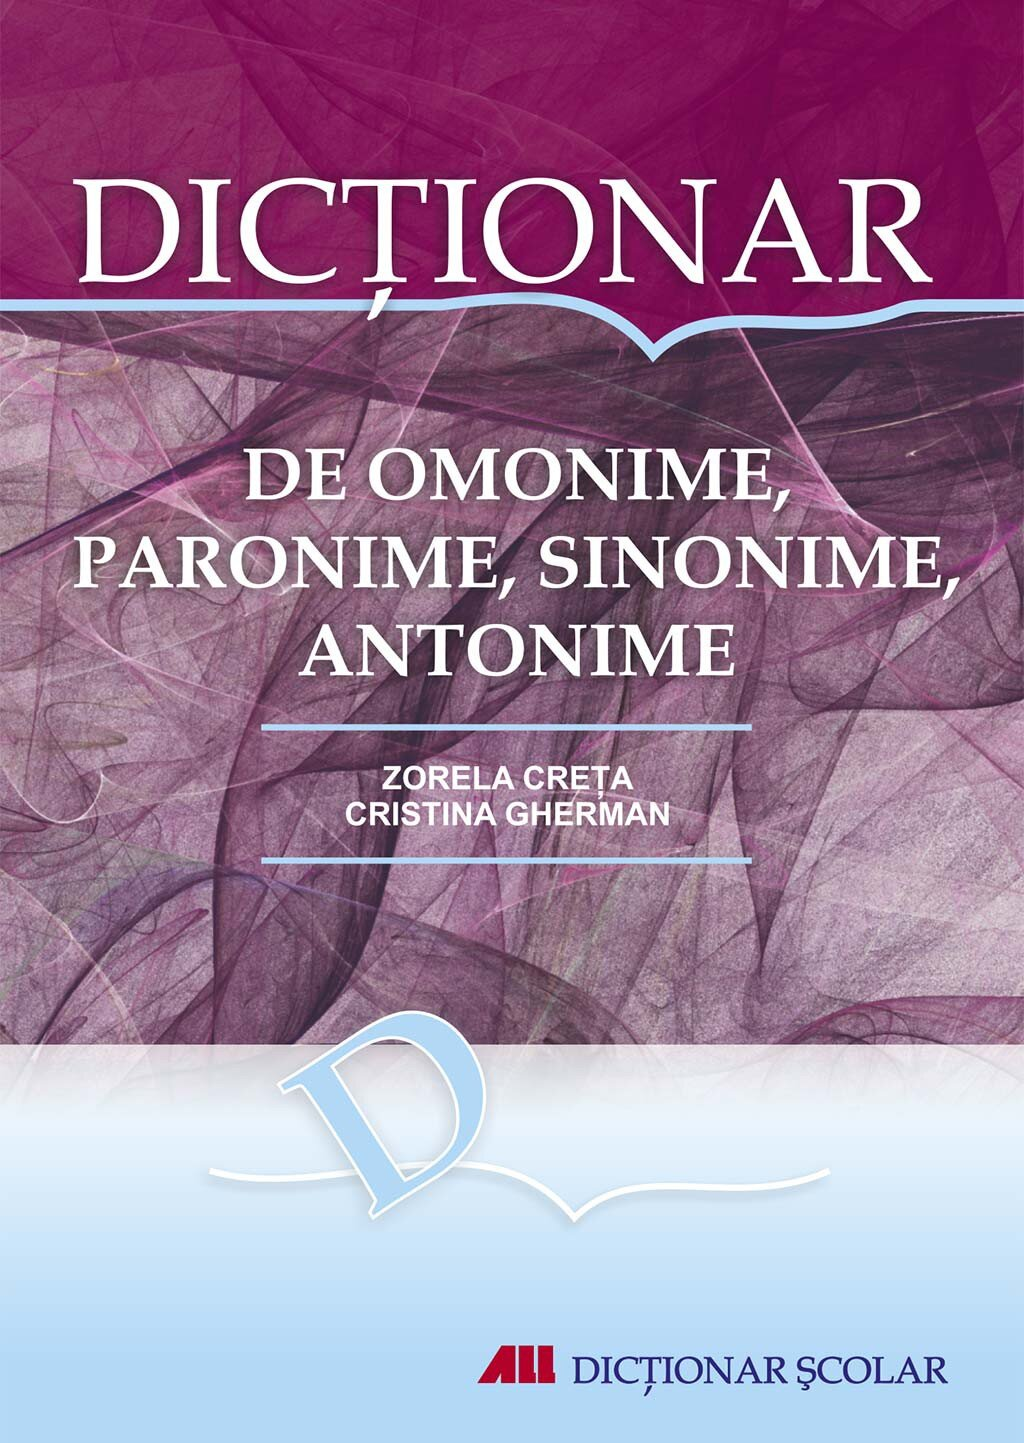 Dictionar de omonime, paronime, sinonime, antonime (eBook)